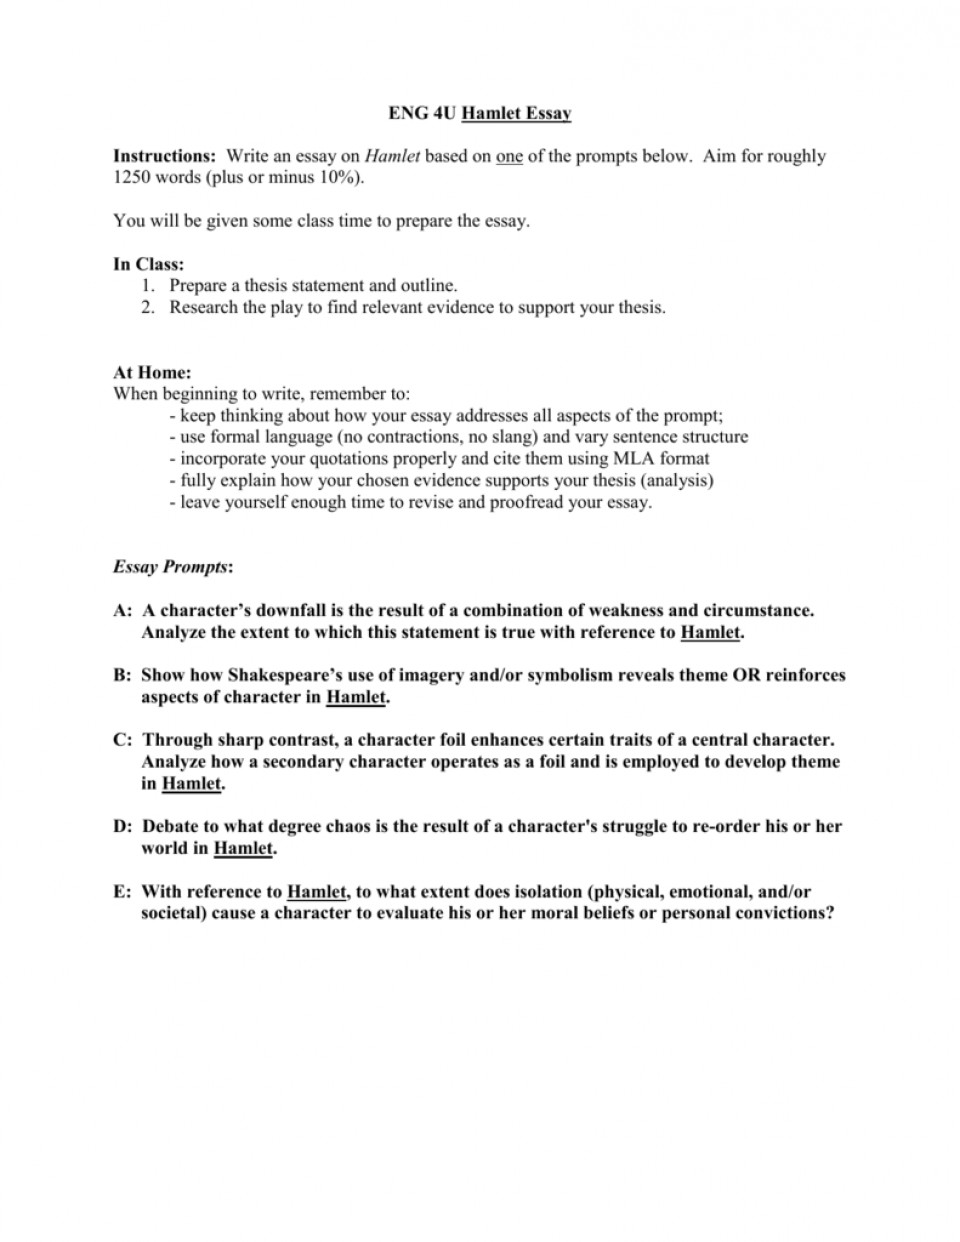 005 Essay Example 008038423 1 University Of Chicago Striking Prompts Illinois Prompt 2011 960